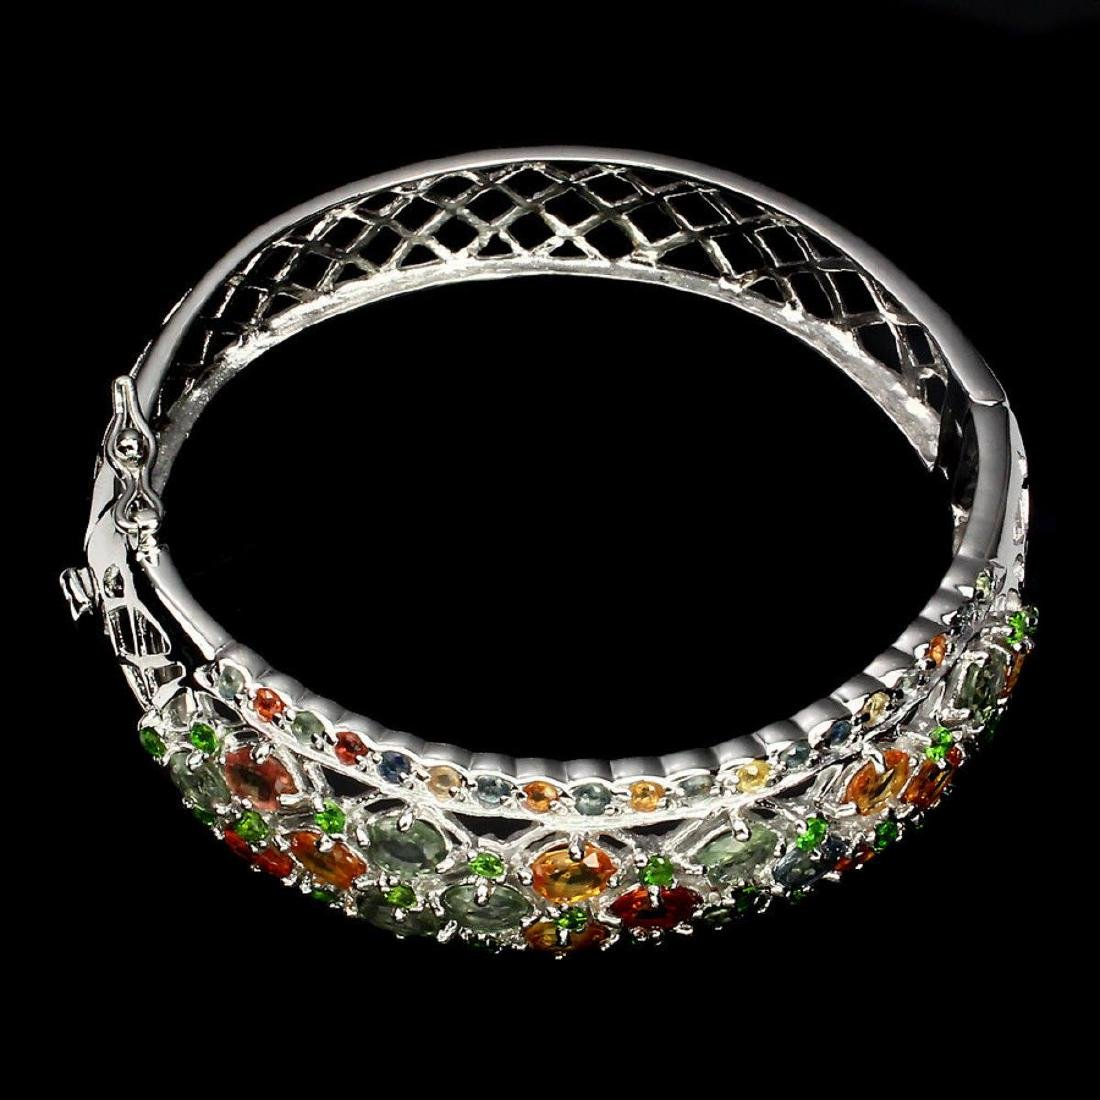 Natural Fancy Sapphire Chrome Diopside Bangle - 3